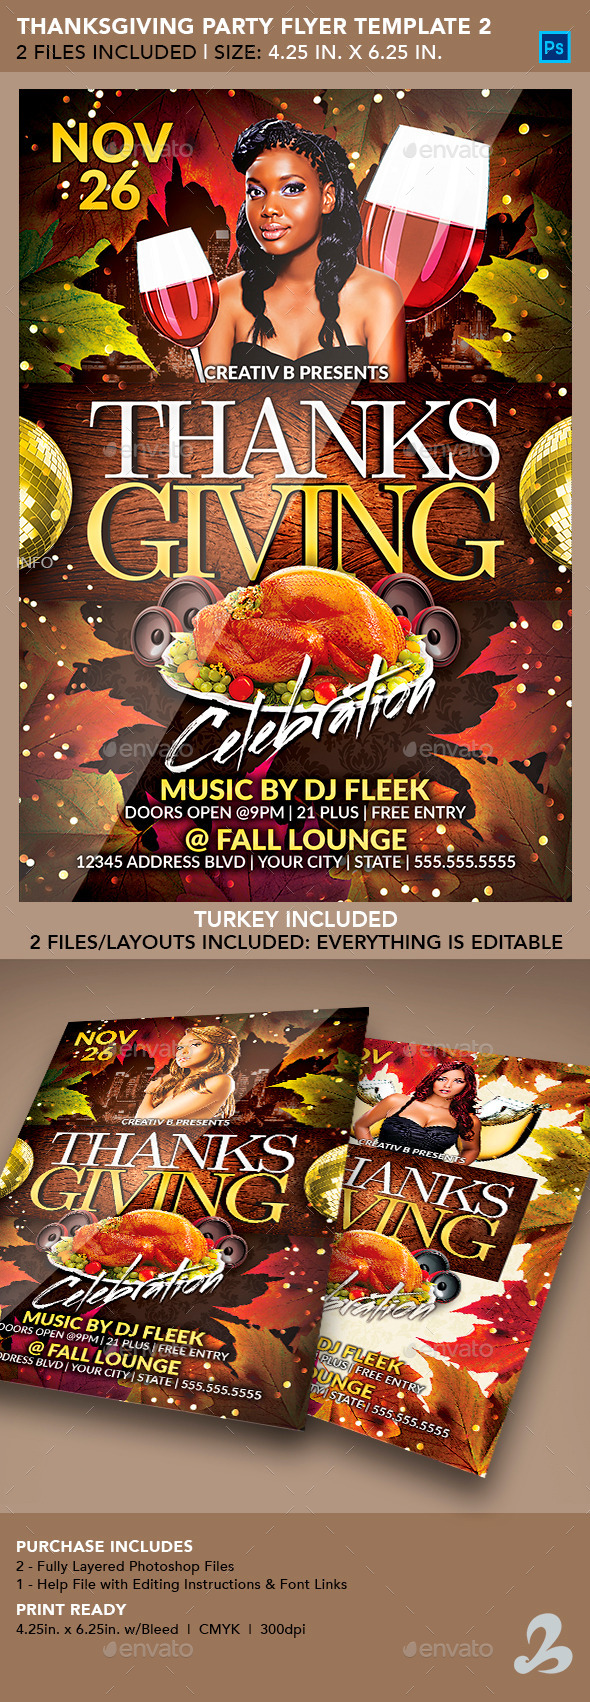 Thanksgiving Party Flyer Template 2 - Clubs & Parties Events